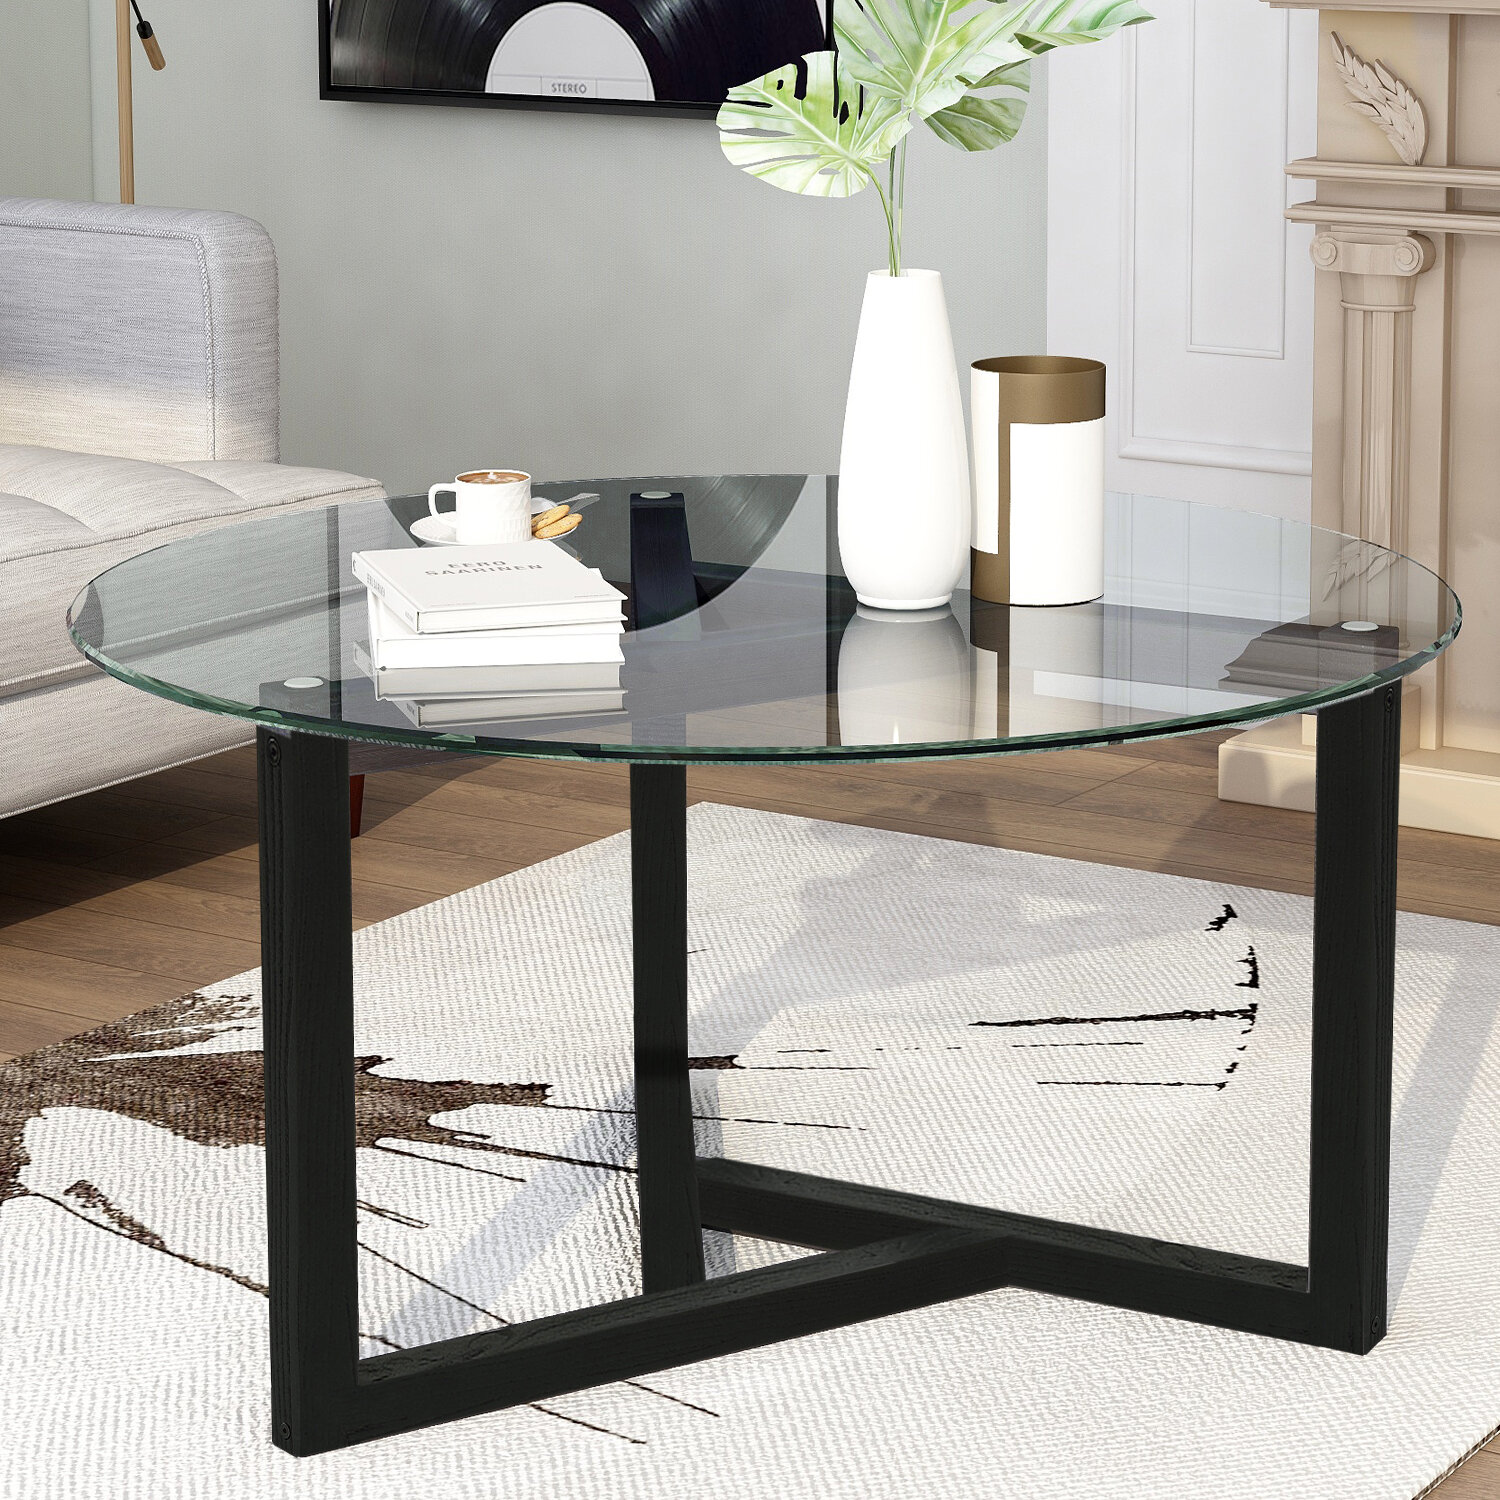 Ebern Designs Round Glass Coffee Table Modern Cocktail Table Easy Assembly Sofa Table For Living Room With Tempered Glass Top Sturdy Wood Base Oak Wayfair [ 1500 x 1500 Pixel ]